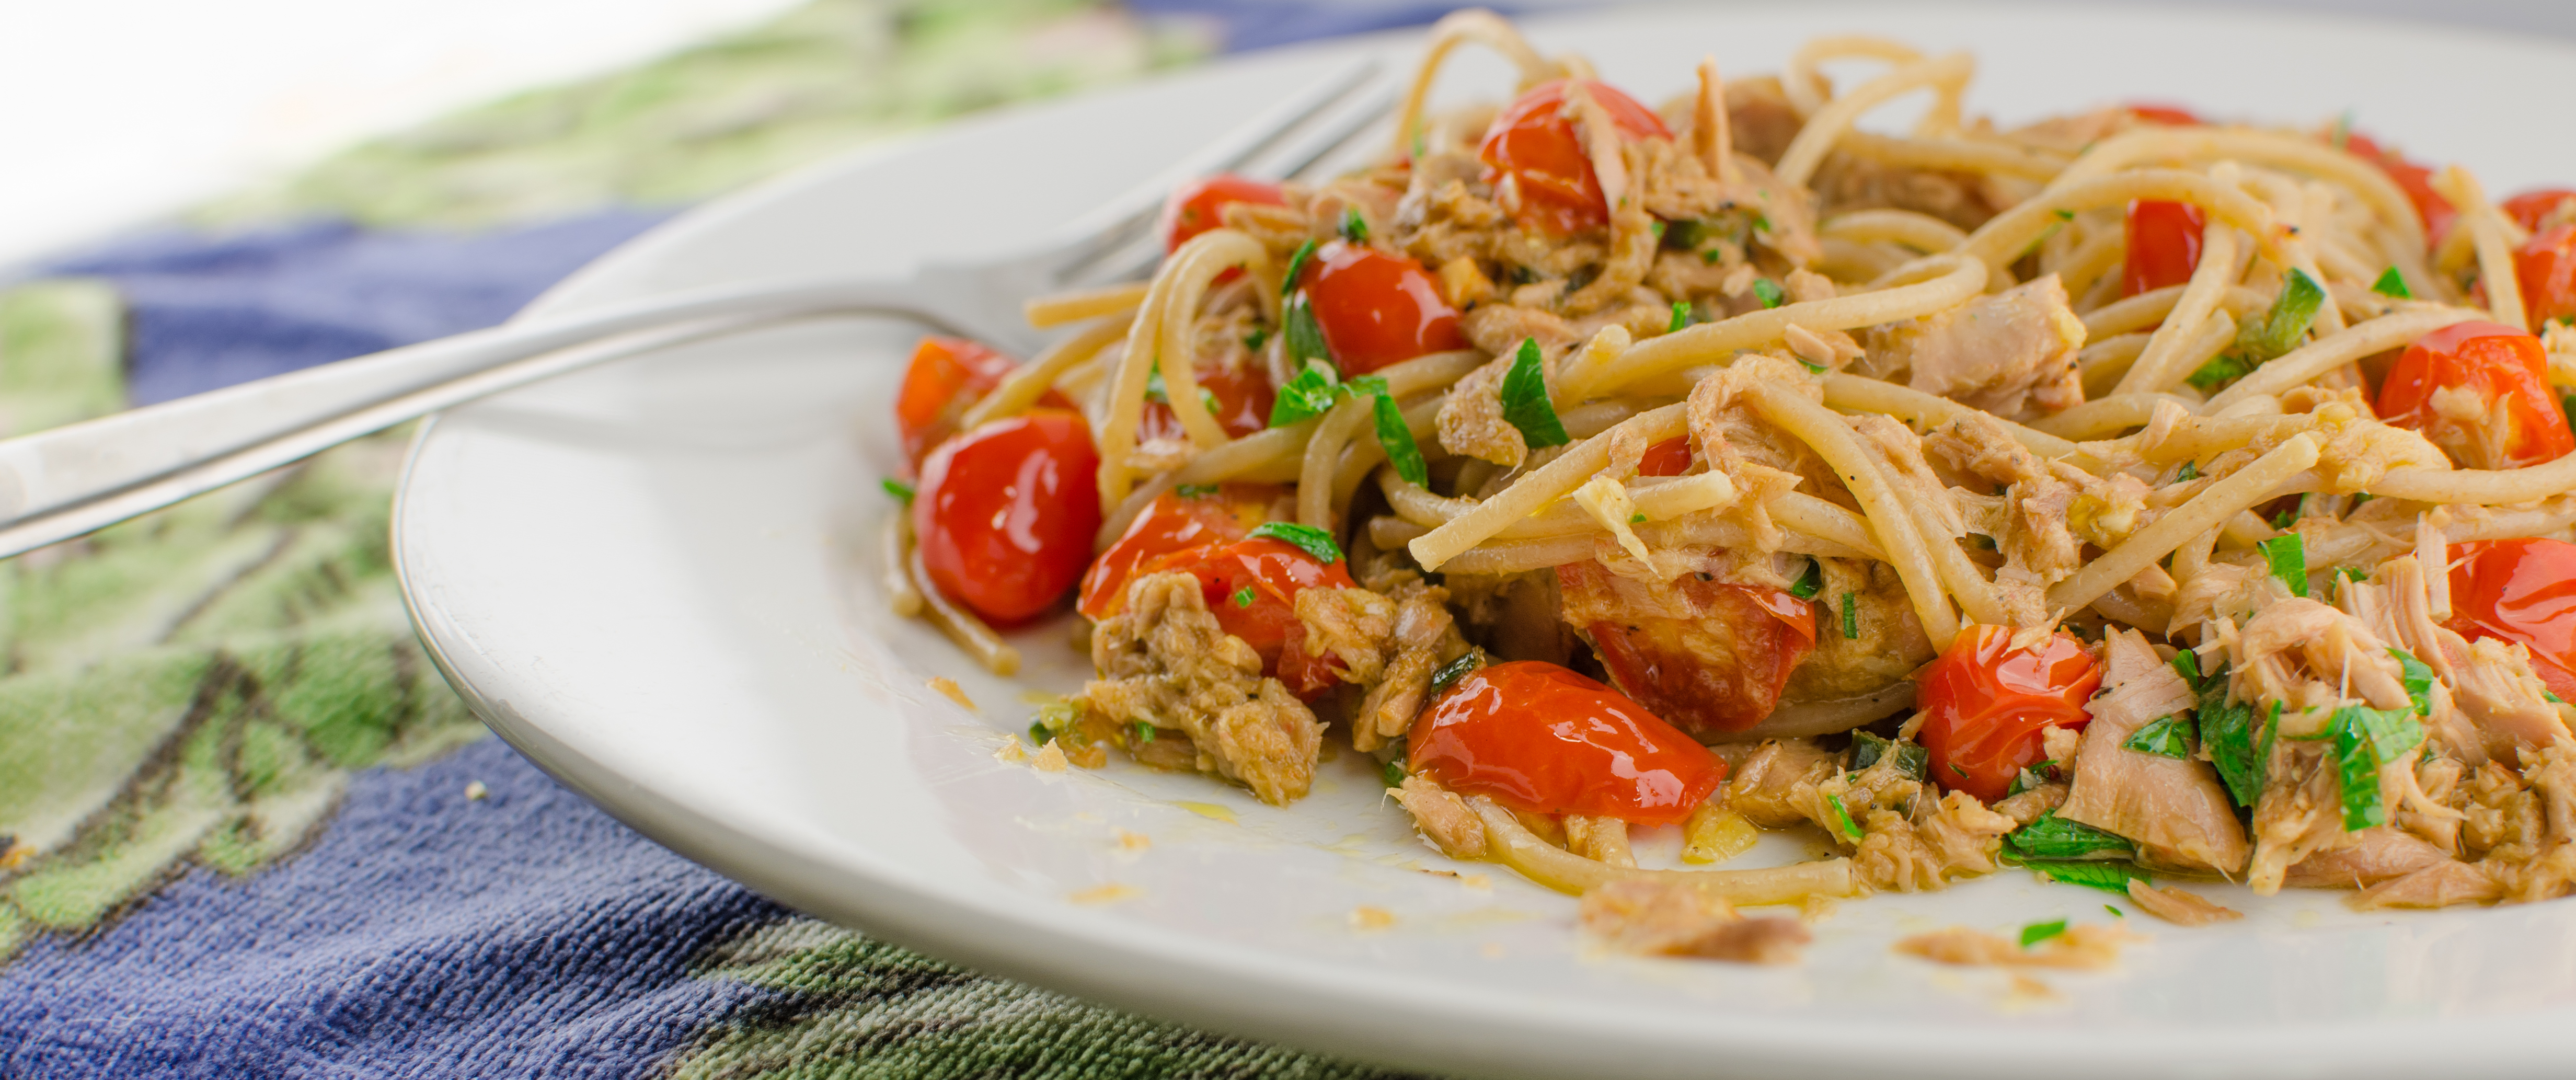 Pasta with canned tuna food e file for Tuna fish pasta